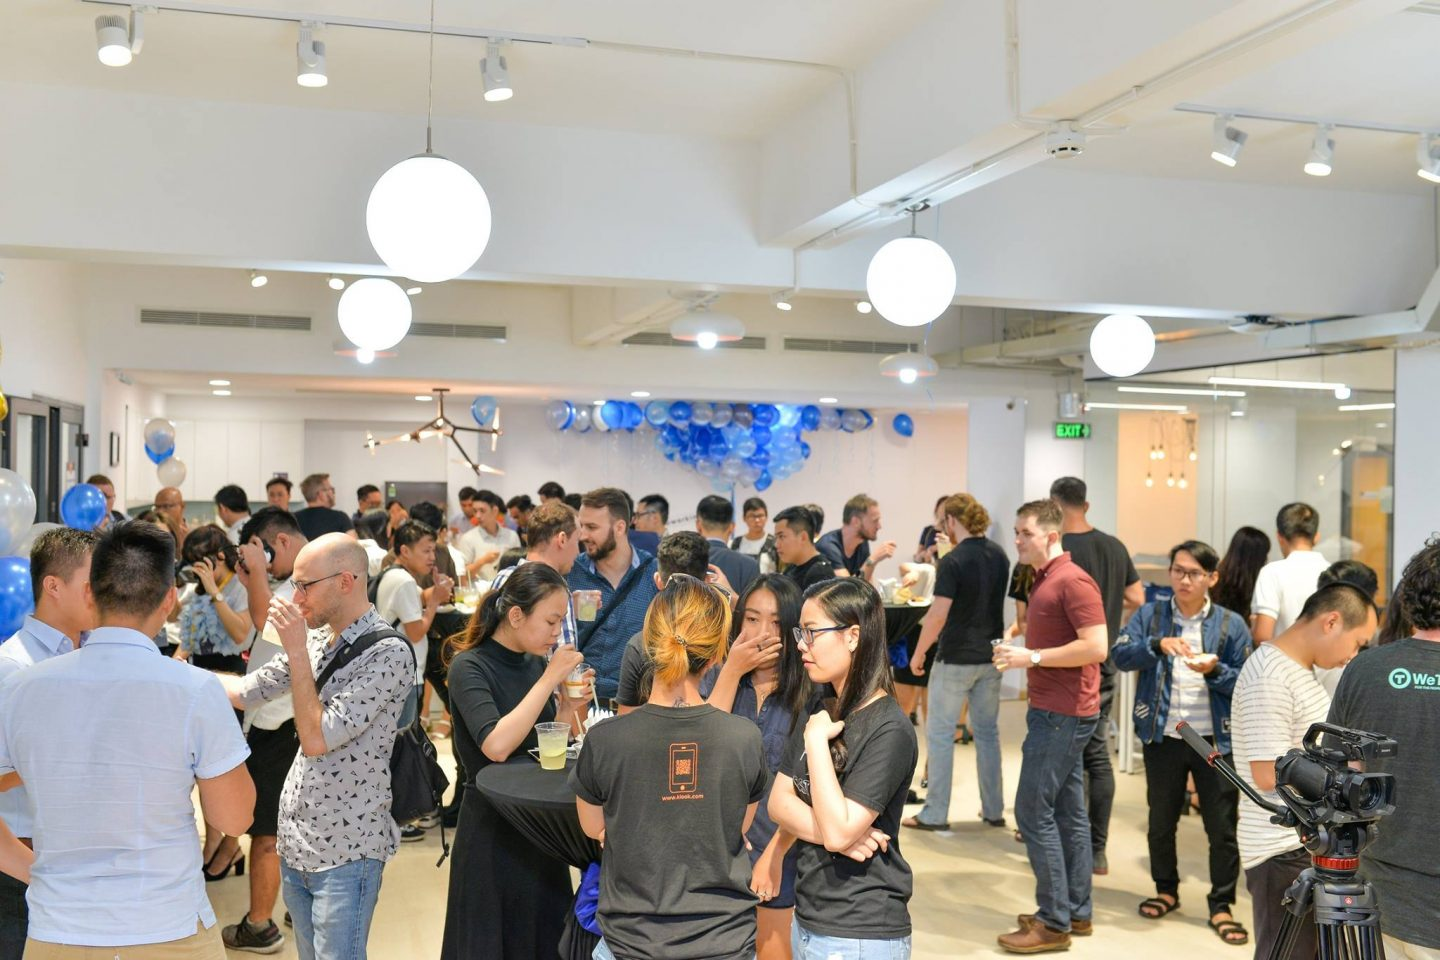 Networking Opportunities in Renting Coworking Space